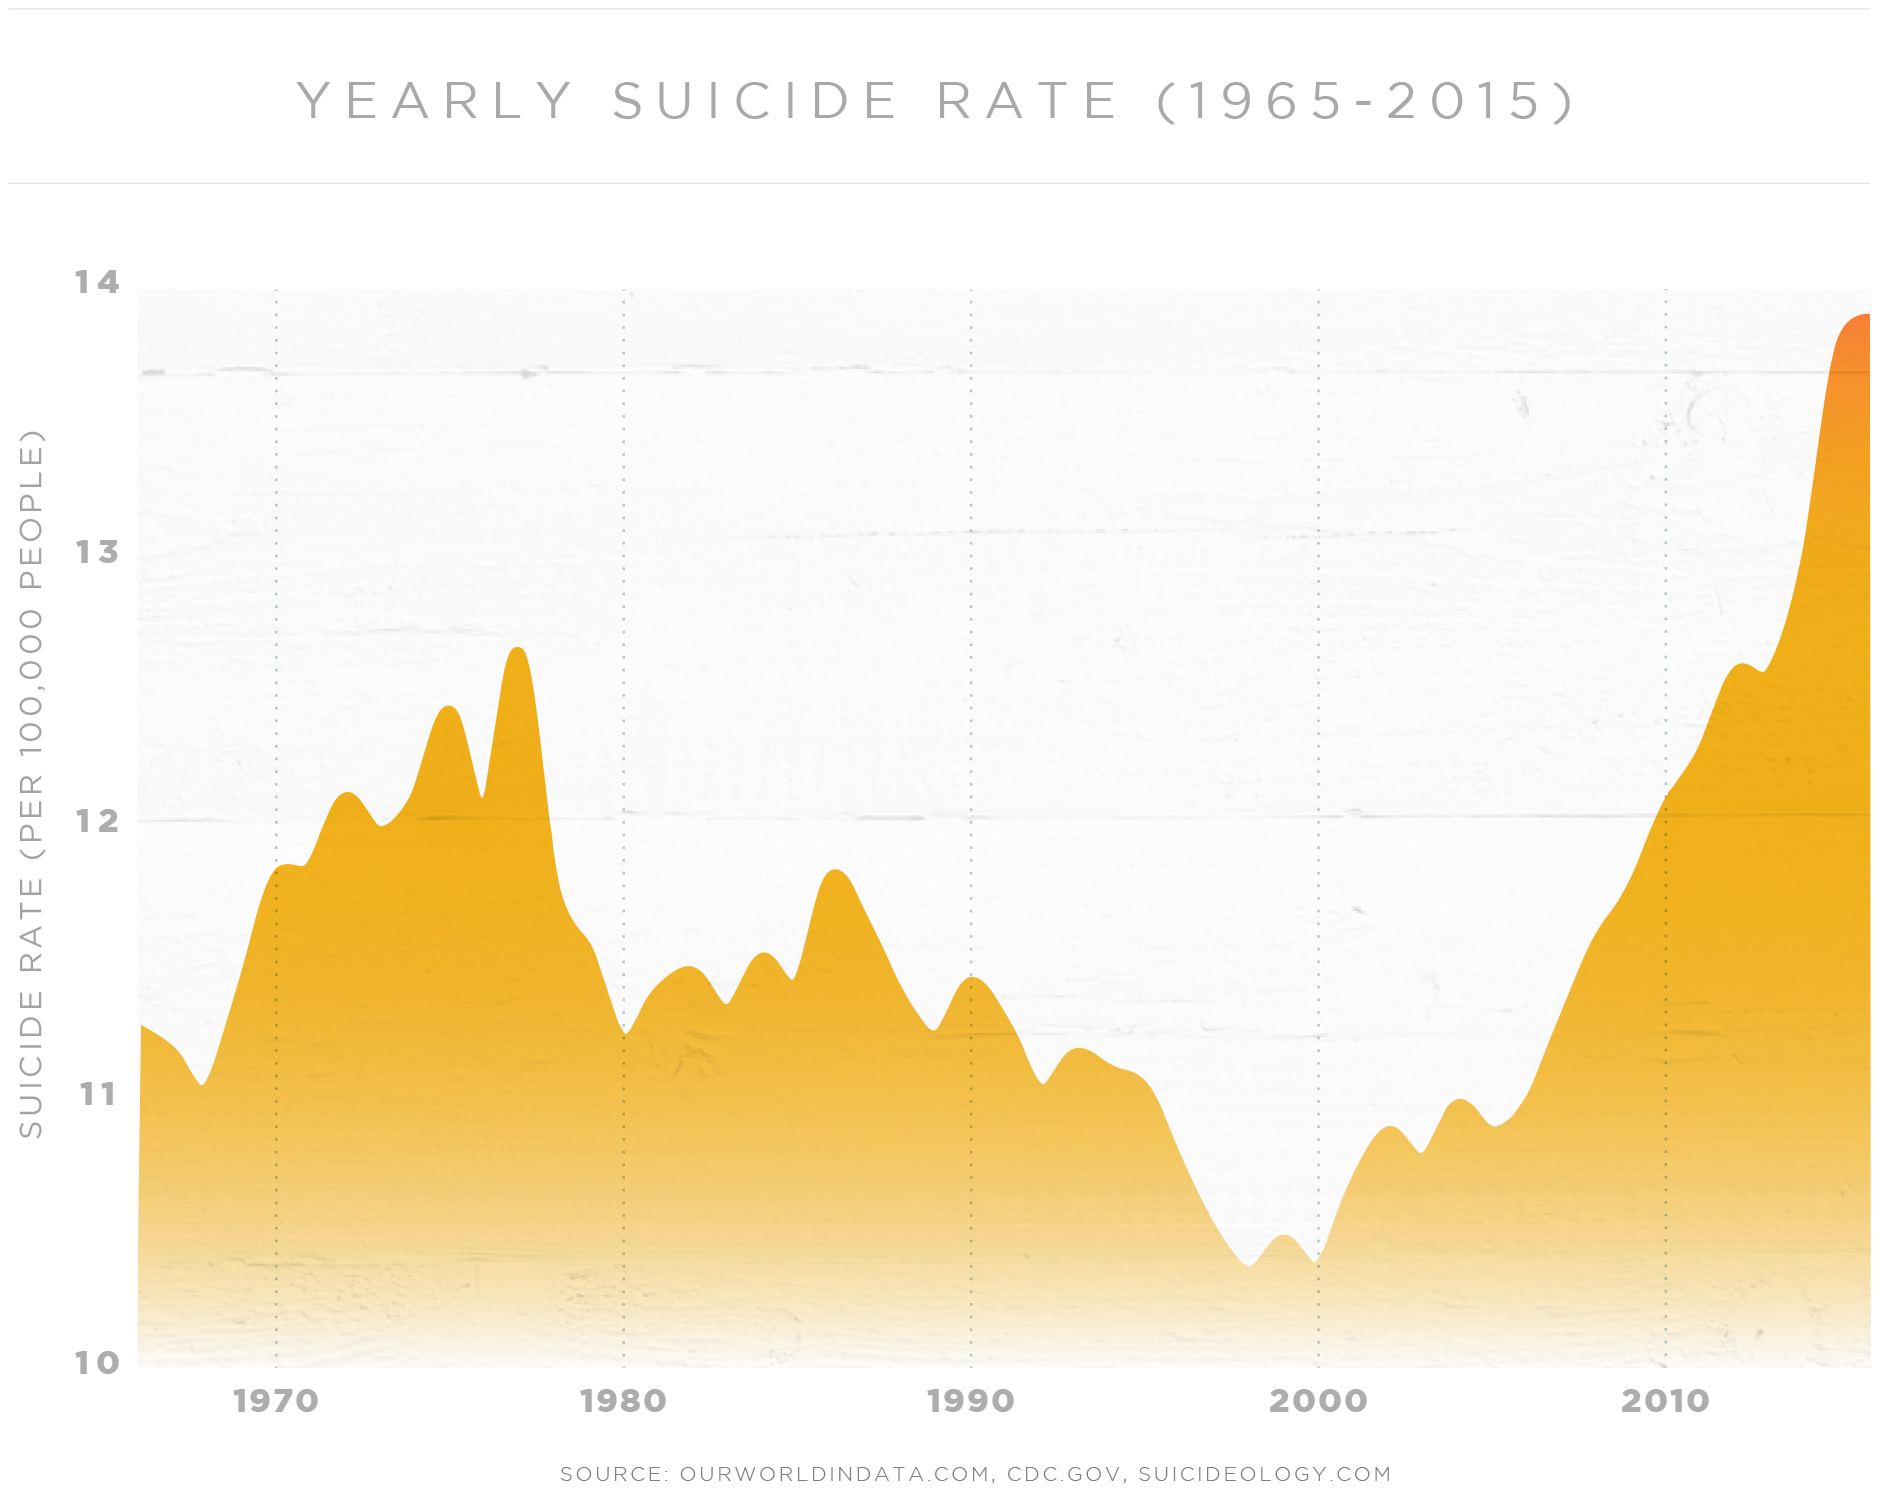 Graph showing the yearly suicide rate from 1965 to 2015